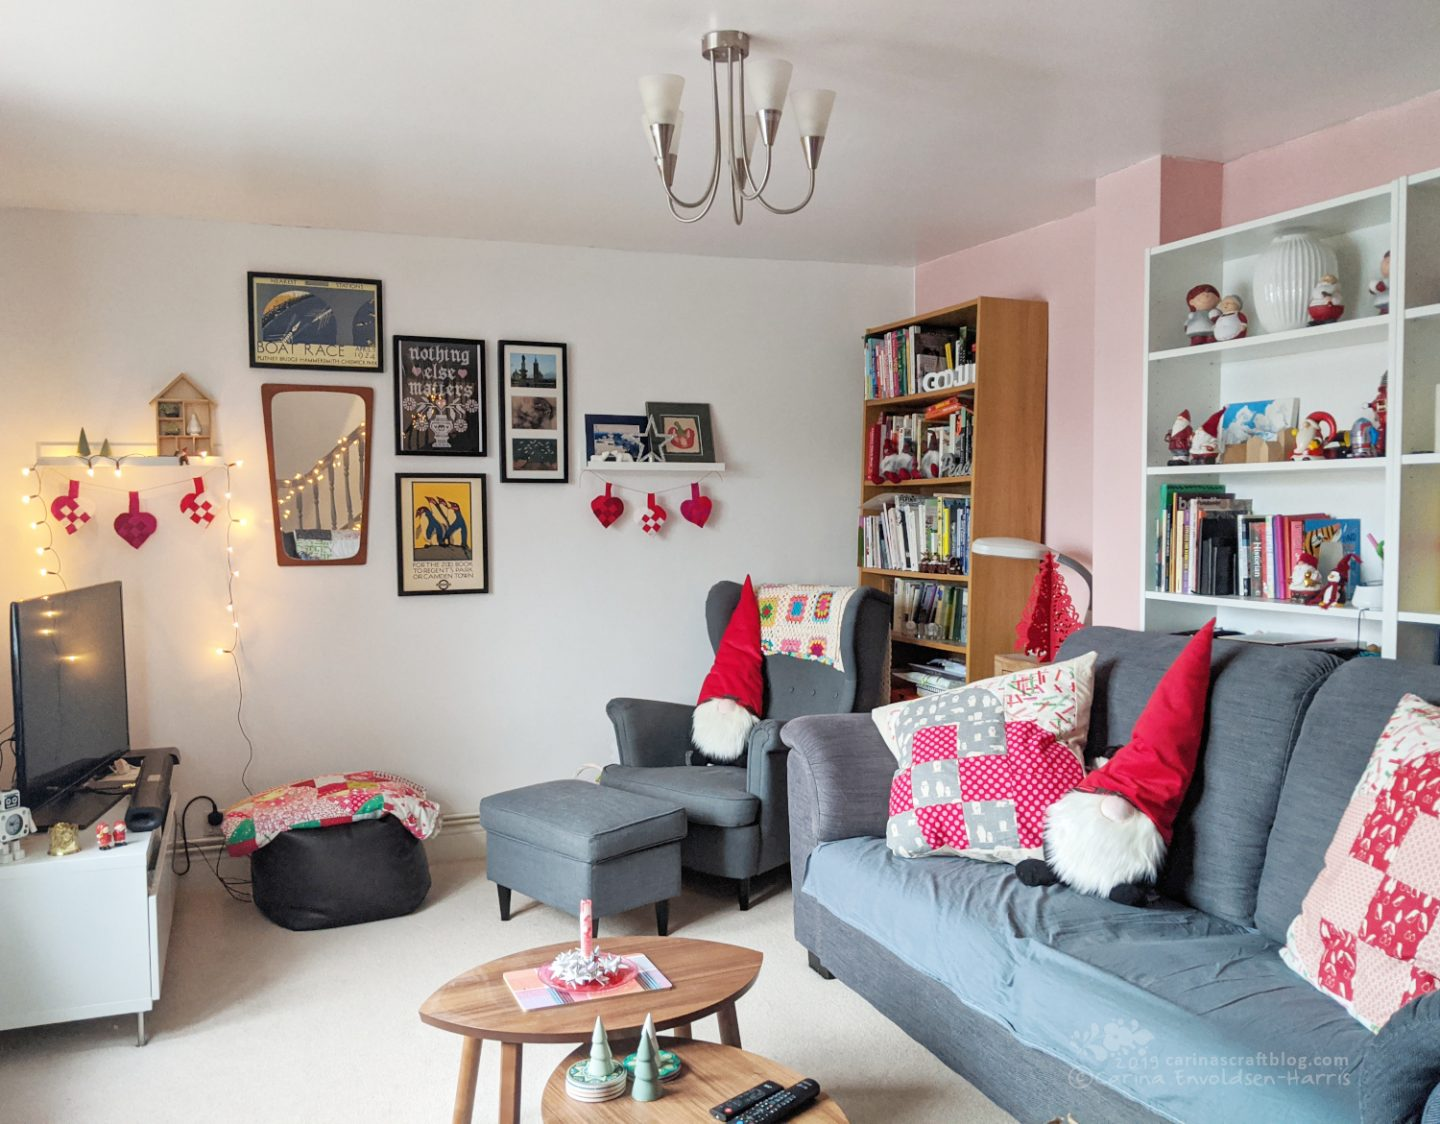 Living room with grey sofa and arm chair. Decorated with Christmasy cushions and other decorations, mainly in red and white.